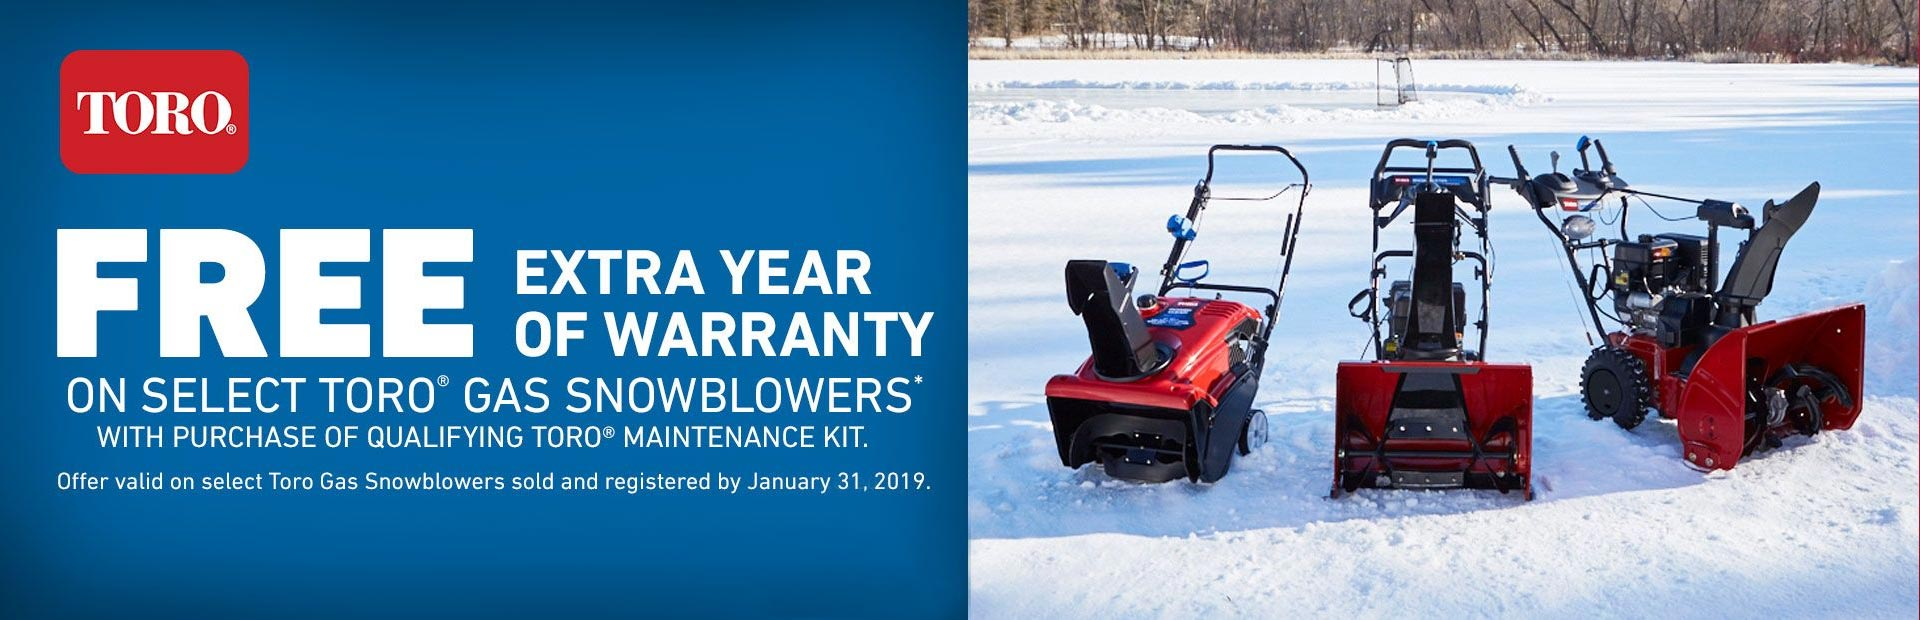 Toro: 1-Year Toro Engine Warranty Extension -Snowblowers